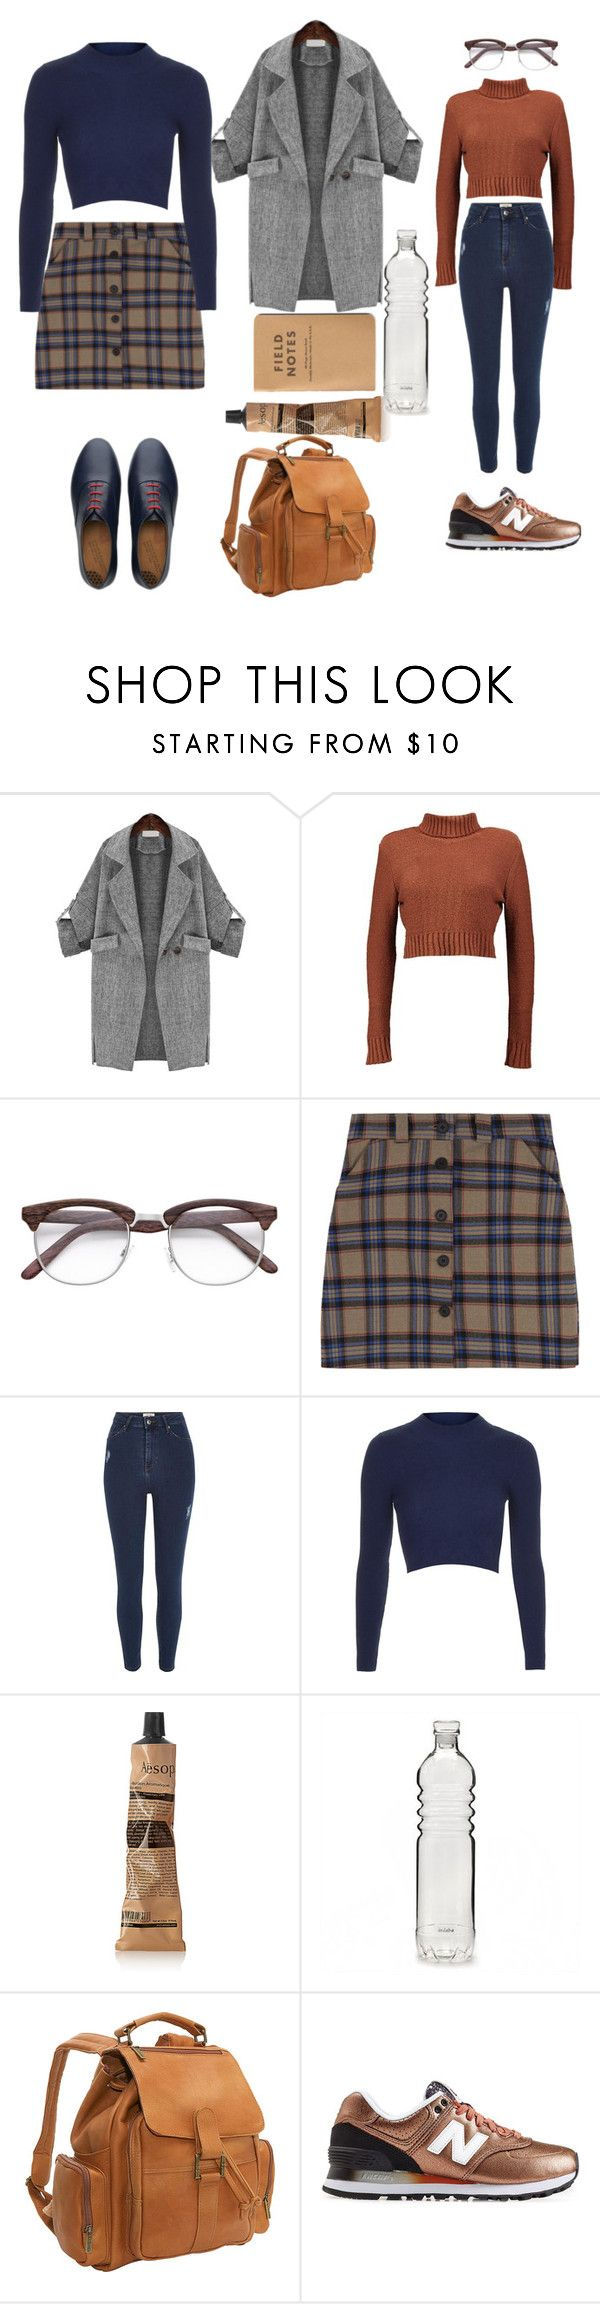 """Untitled #58"" by mycleo on Polyvore featuring Boohoo, River Island, Topshop, Aesop, Le Donne, New Balance and FitFlop"